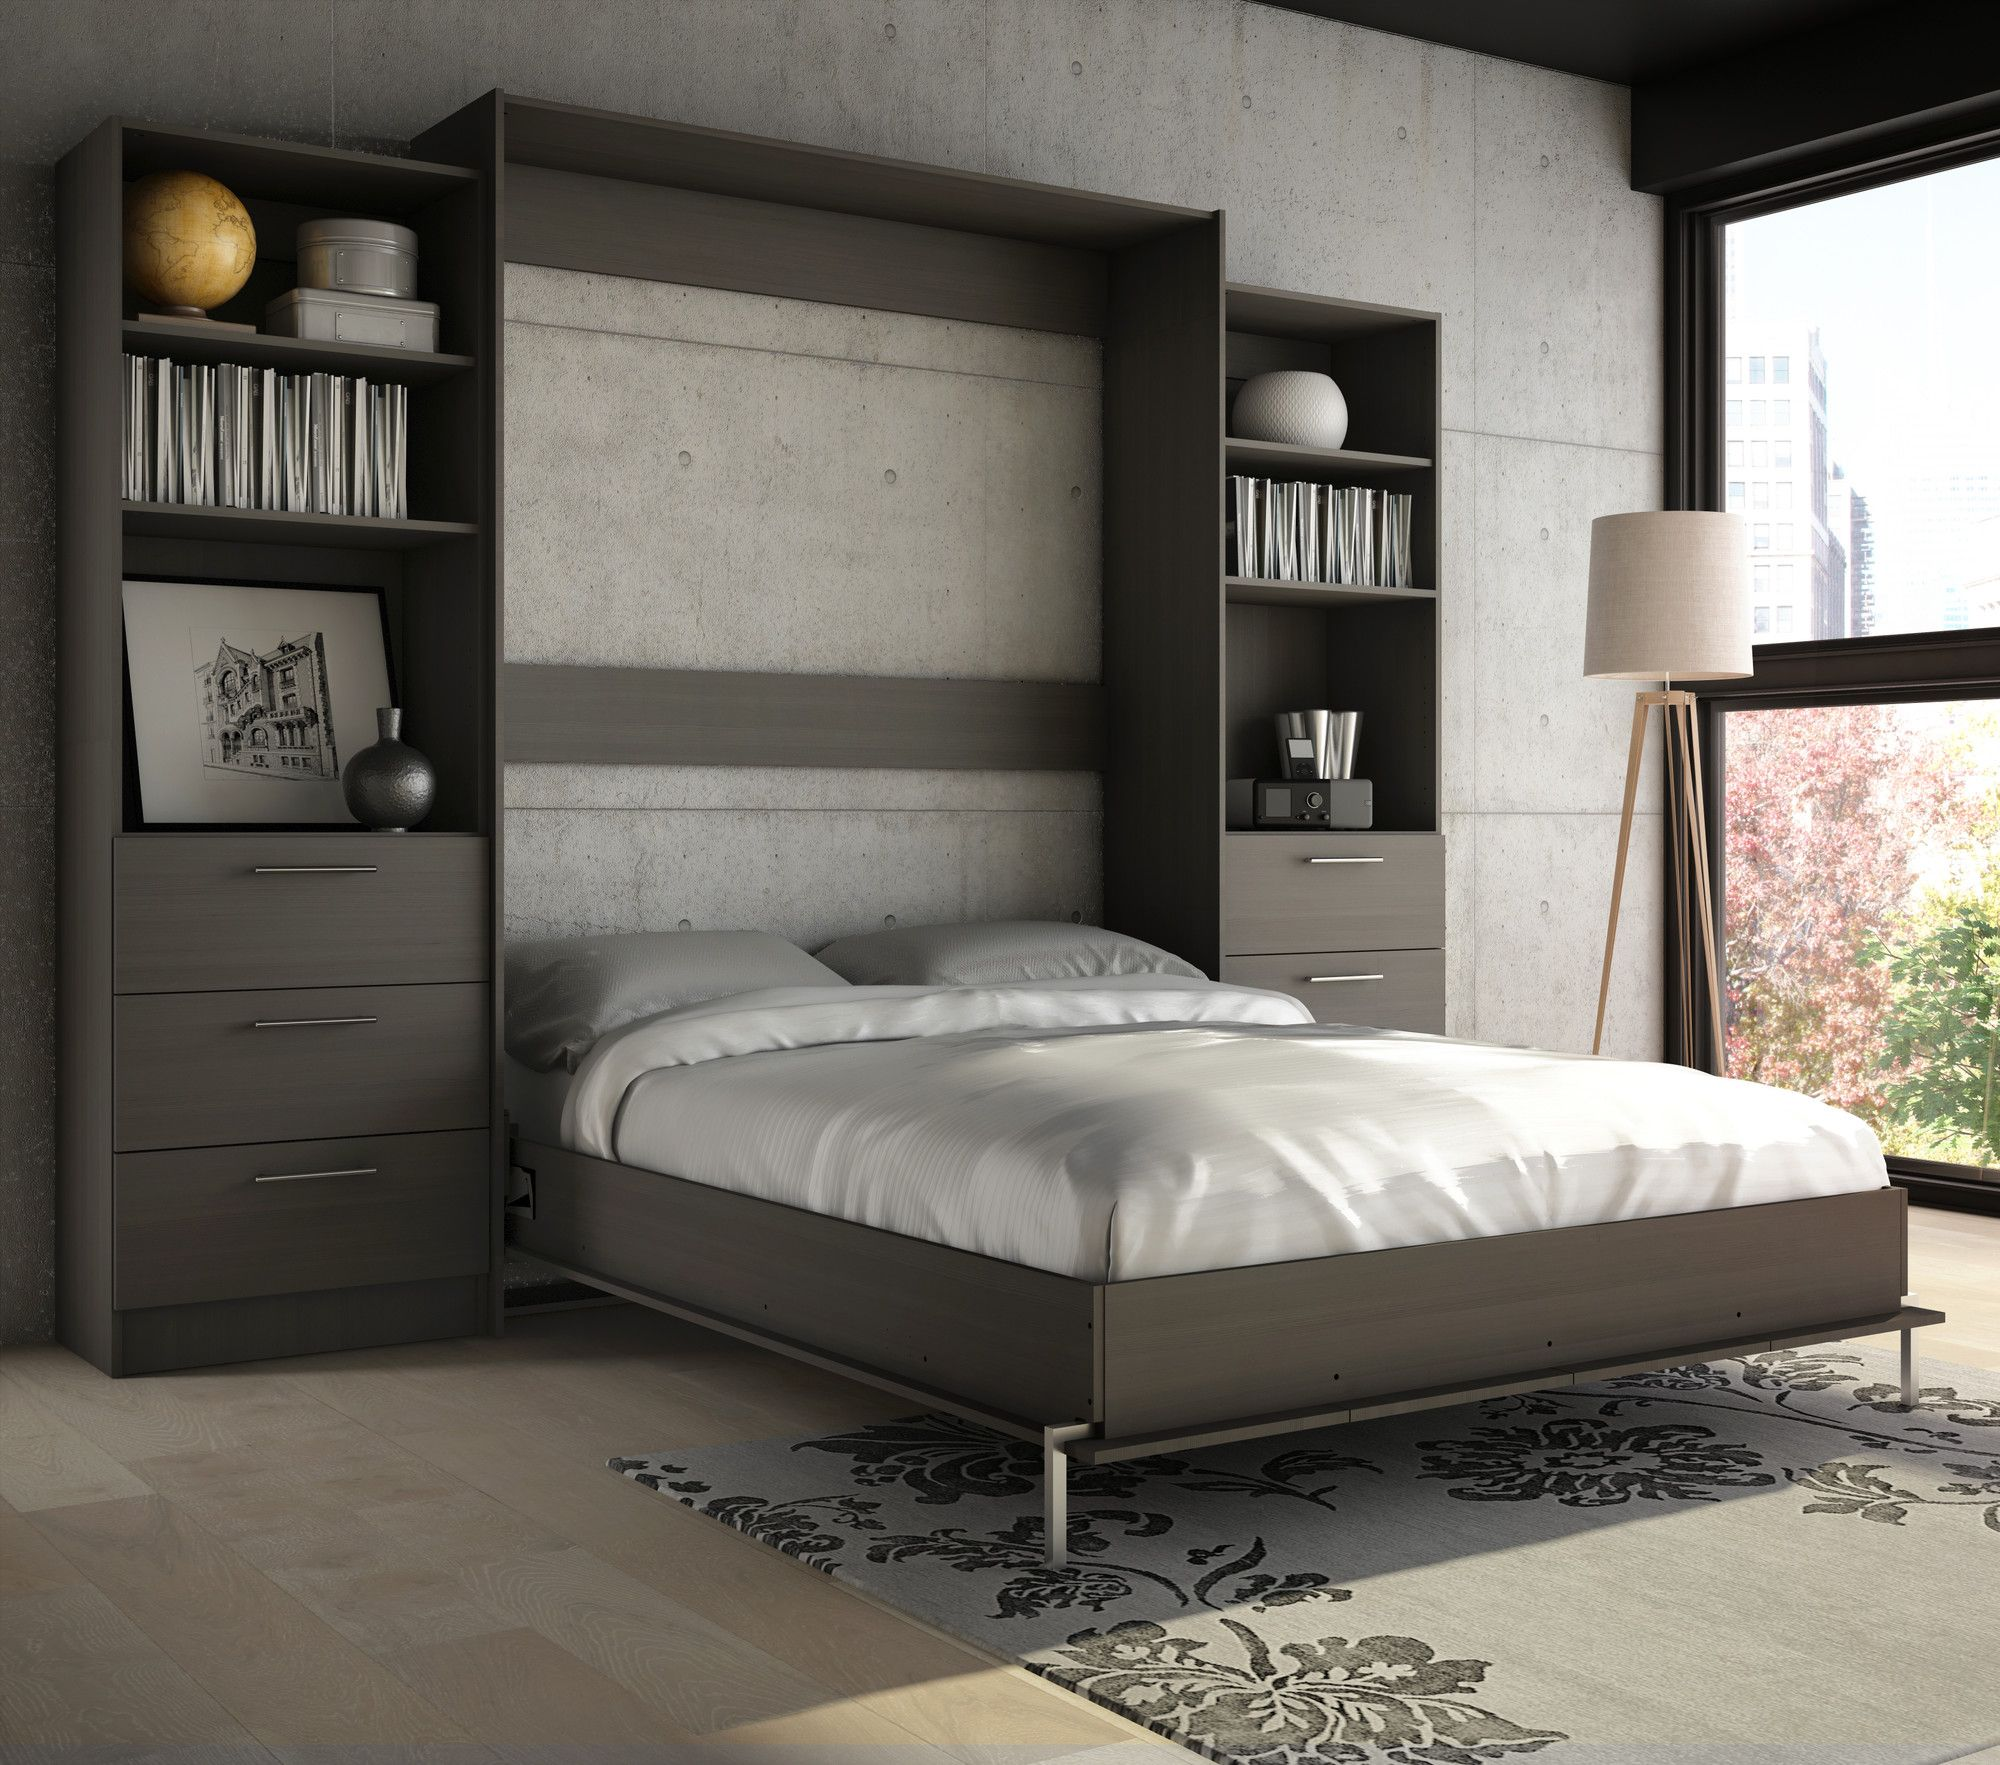 Lower Weston Murphy Bed Fyihti Murphy Bed Bed Wall Bed